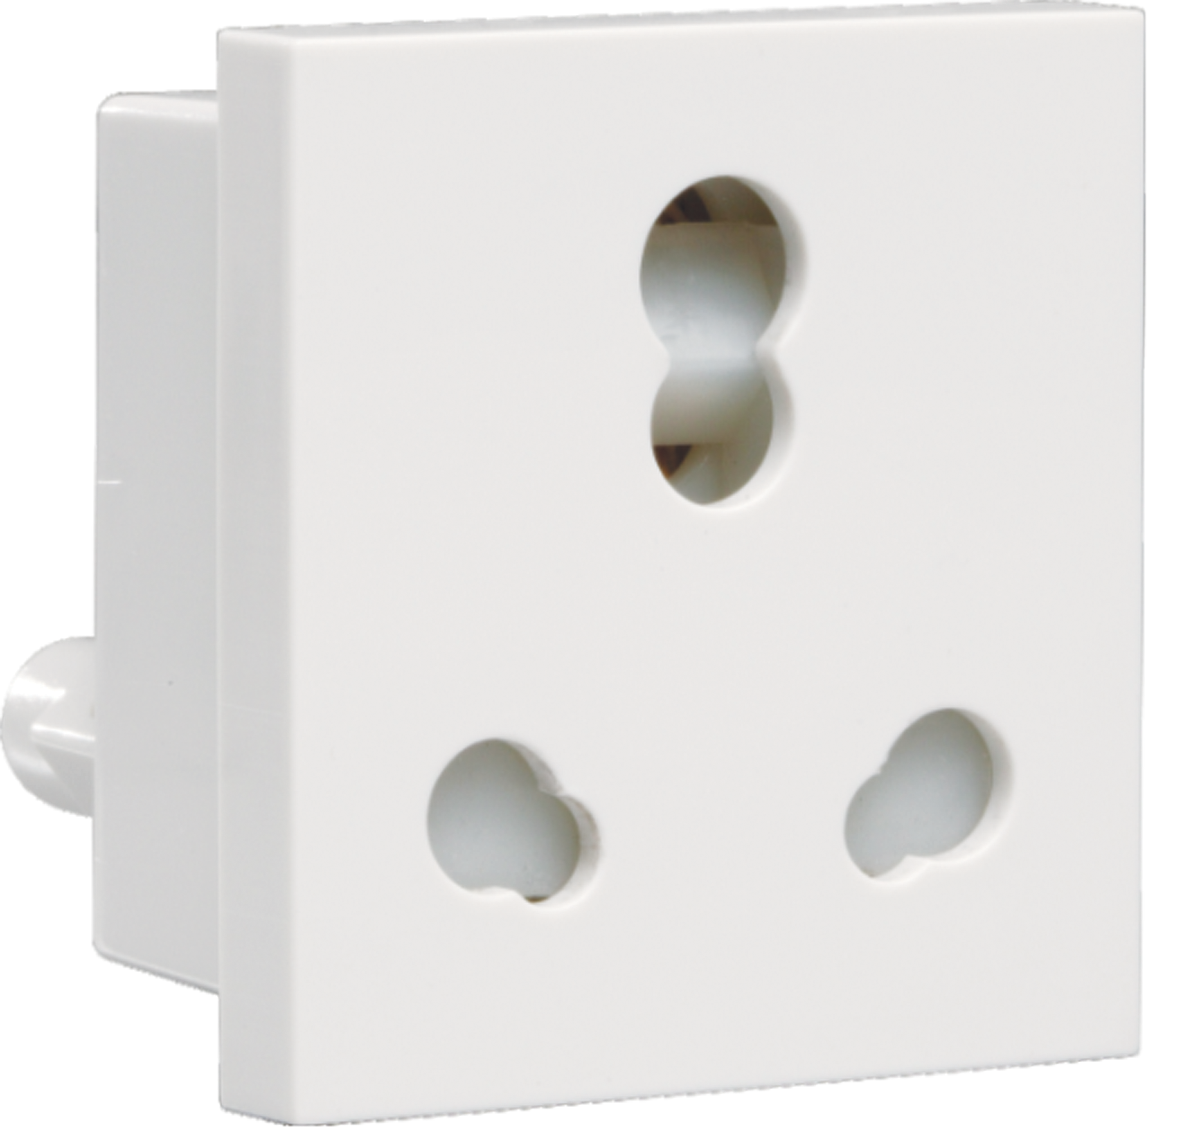 Crabtree - 10 A - 25 A shuttered socket